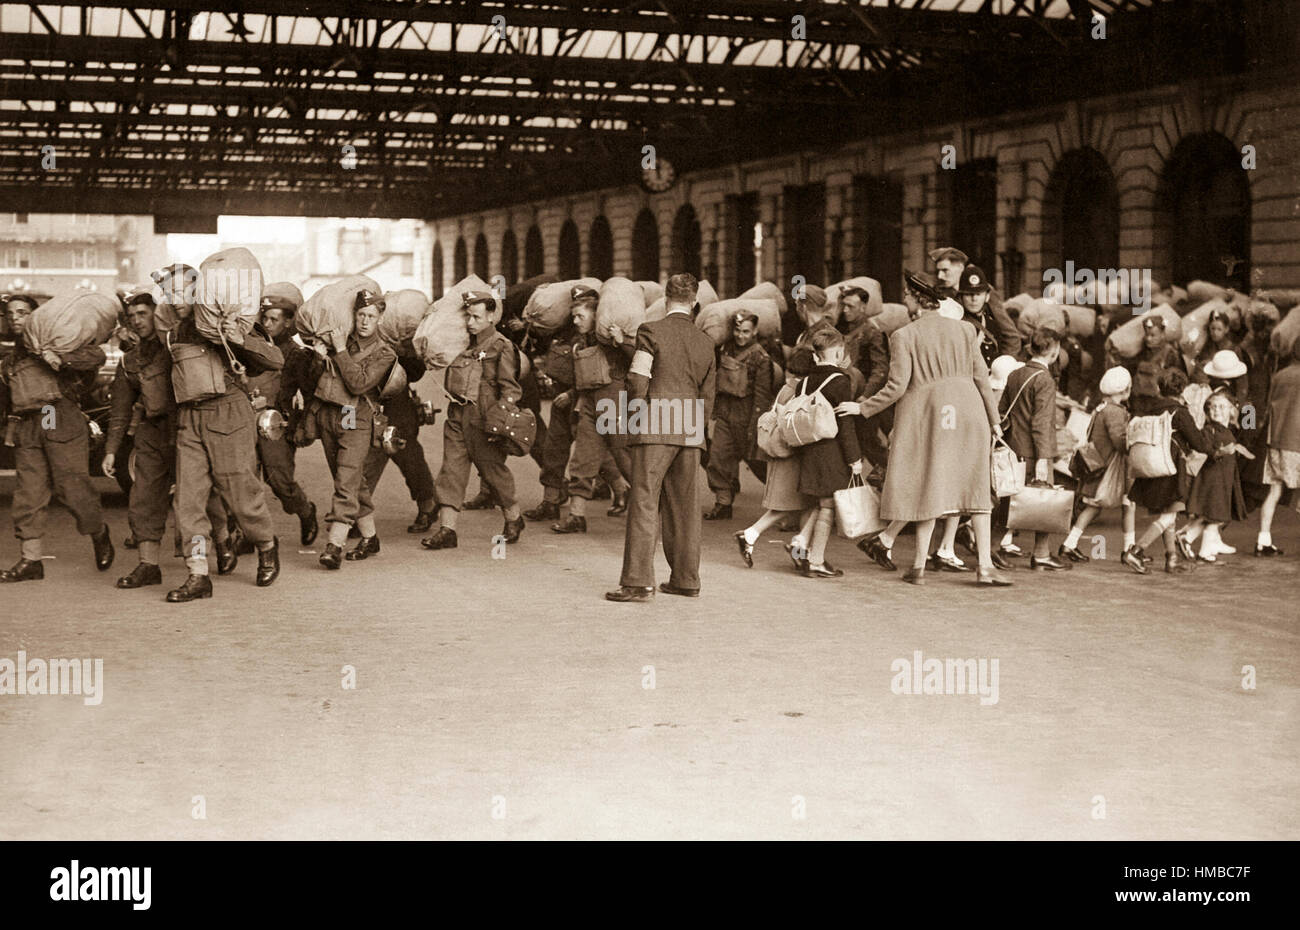 A scene at a London railway station showing troops arriving while children who are being evacuated from London leave - Stock Image